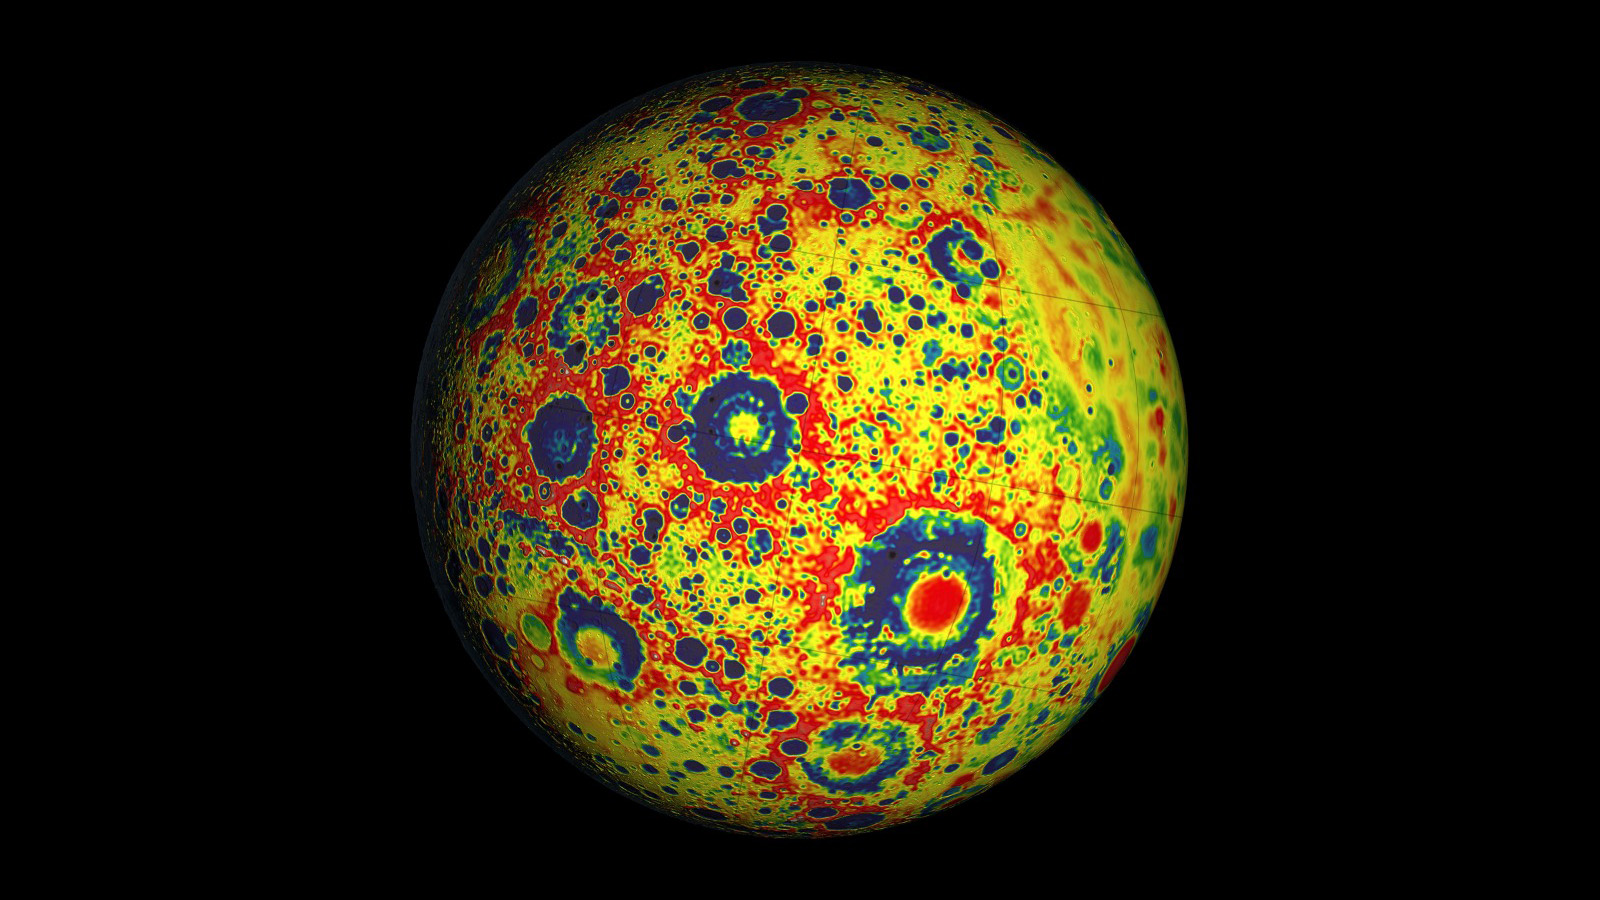 Color-enhanced image showing gravity on globe of the Moon.